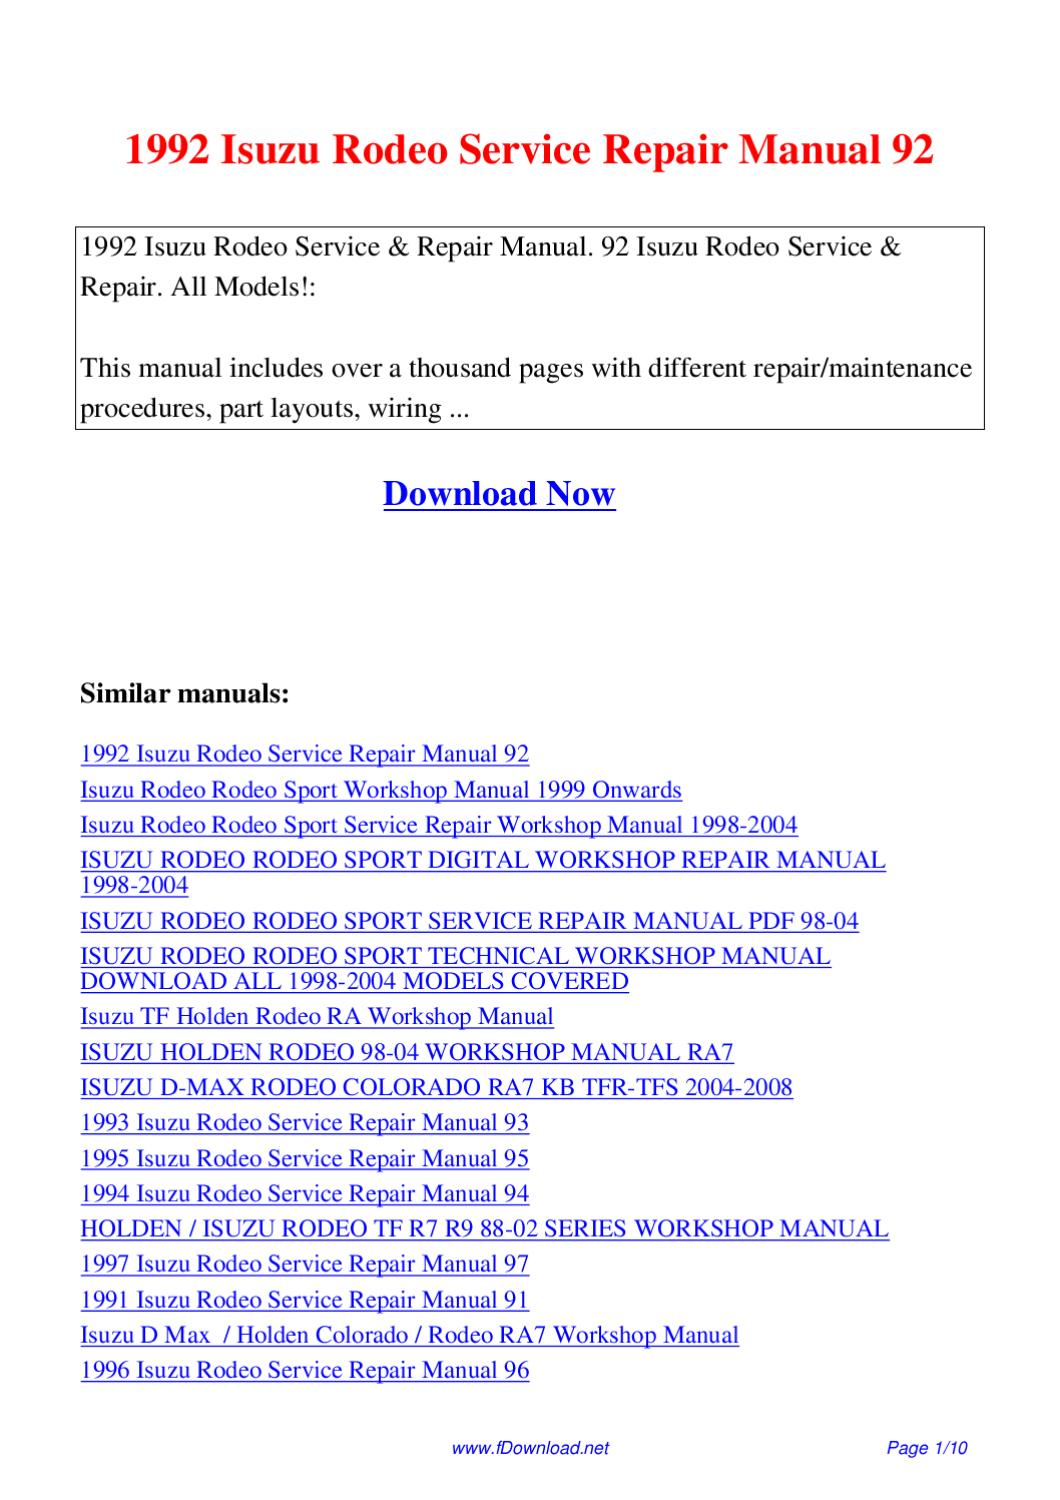 1992 Isuzu Rodeo Service Repair Manual 92 By Giler Kong